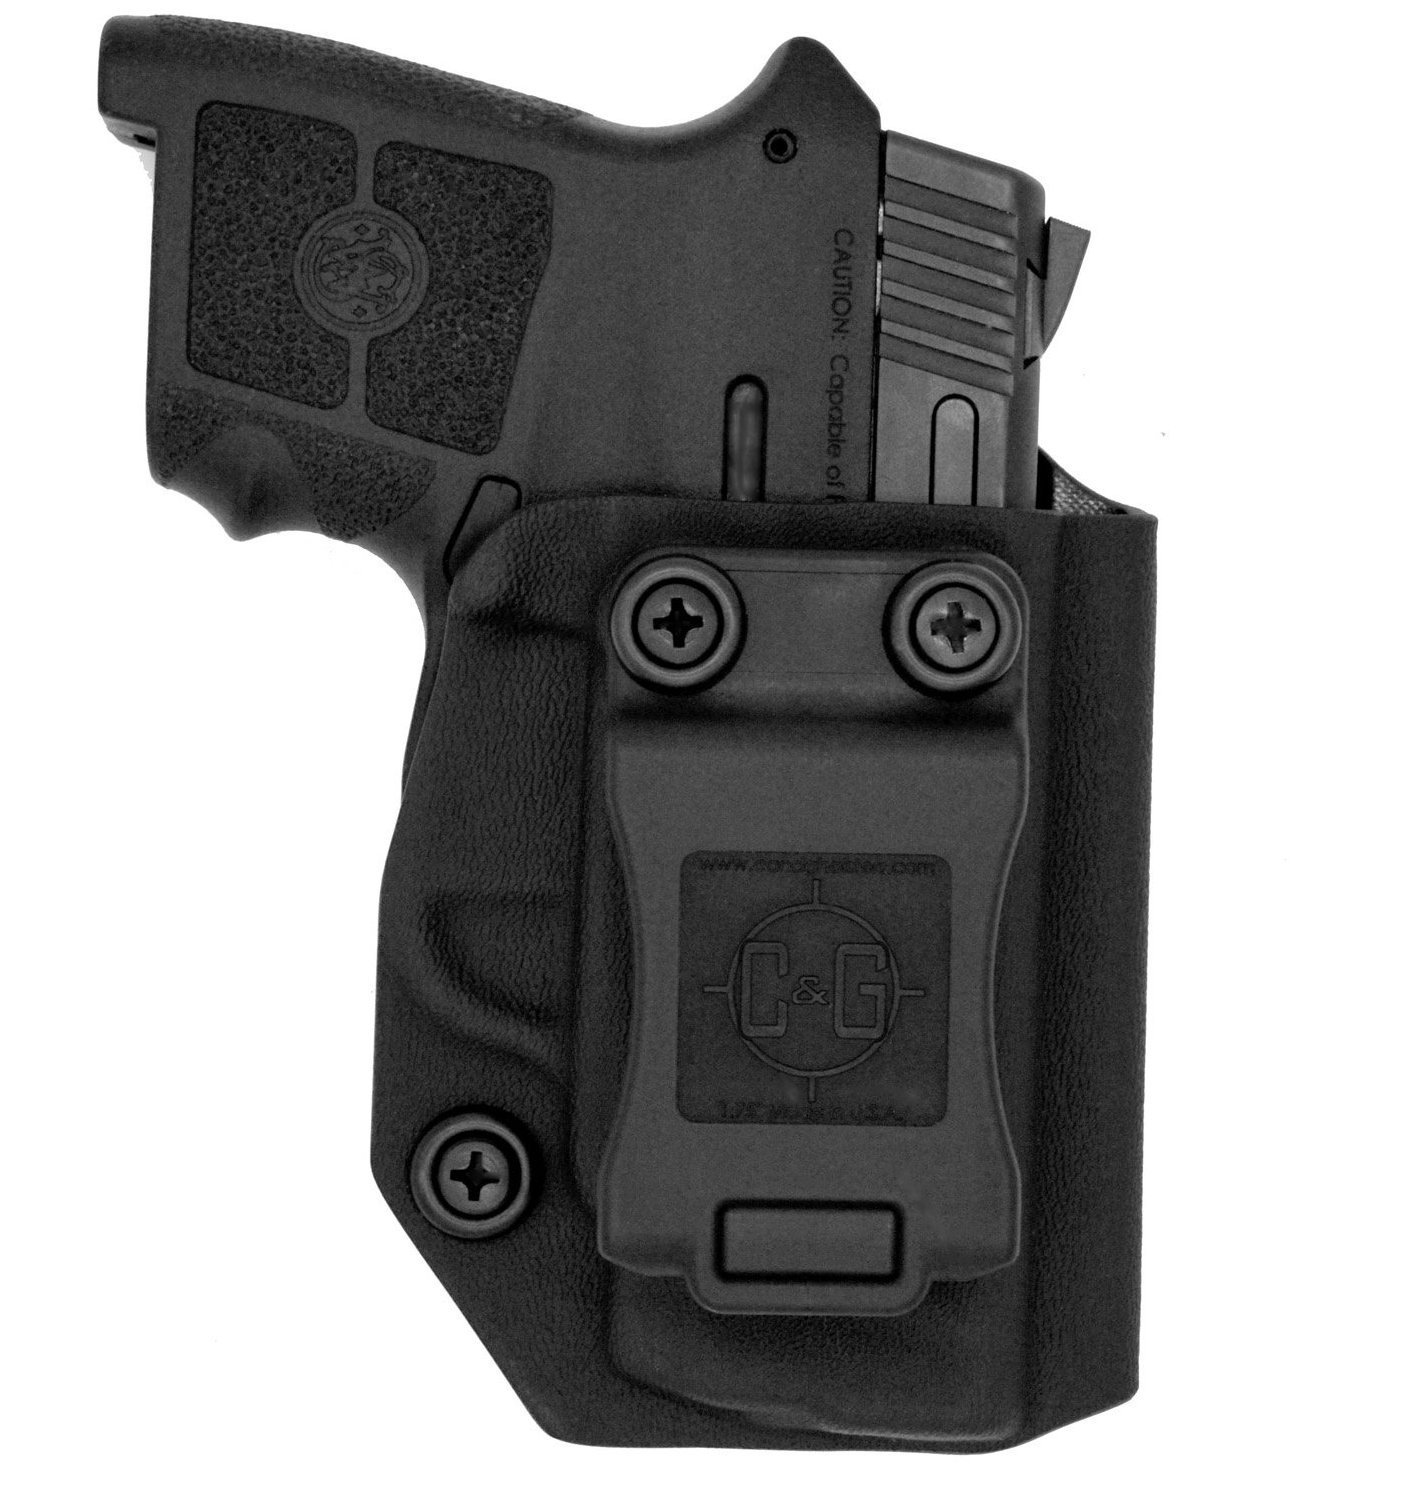 C&G Smith & Wesson Bodyguard 380 IWB Covert Kydex Holster - Quickship |  MTGTactical com